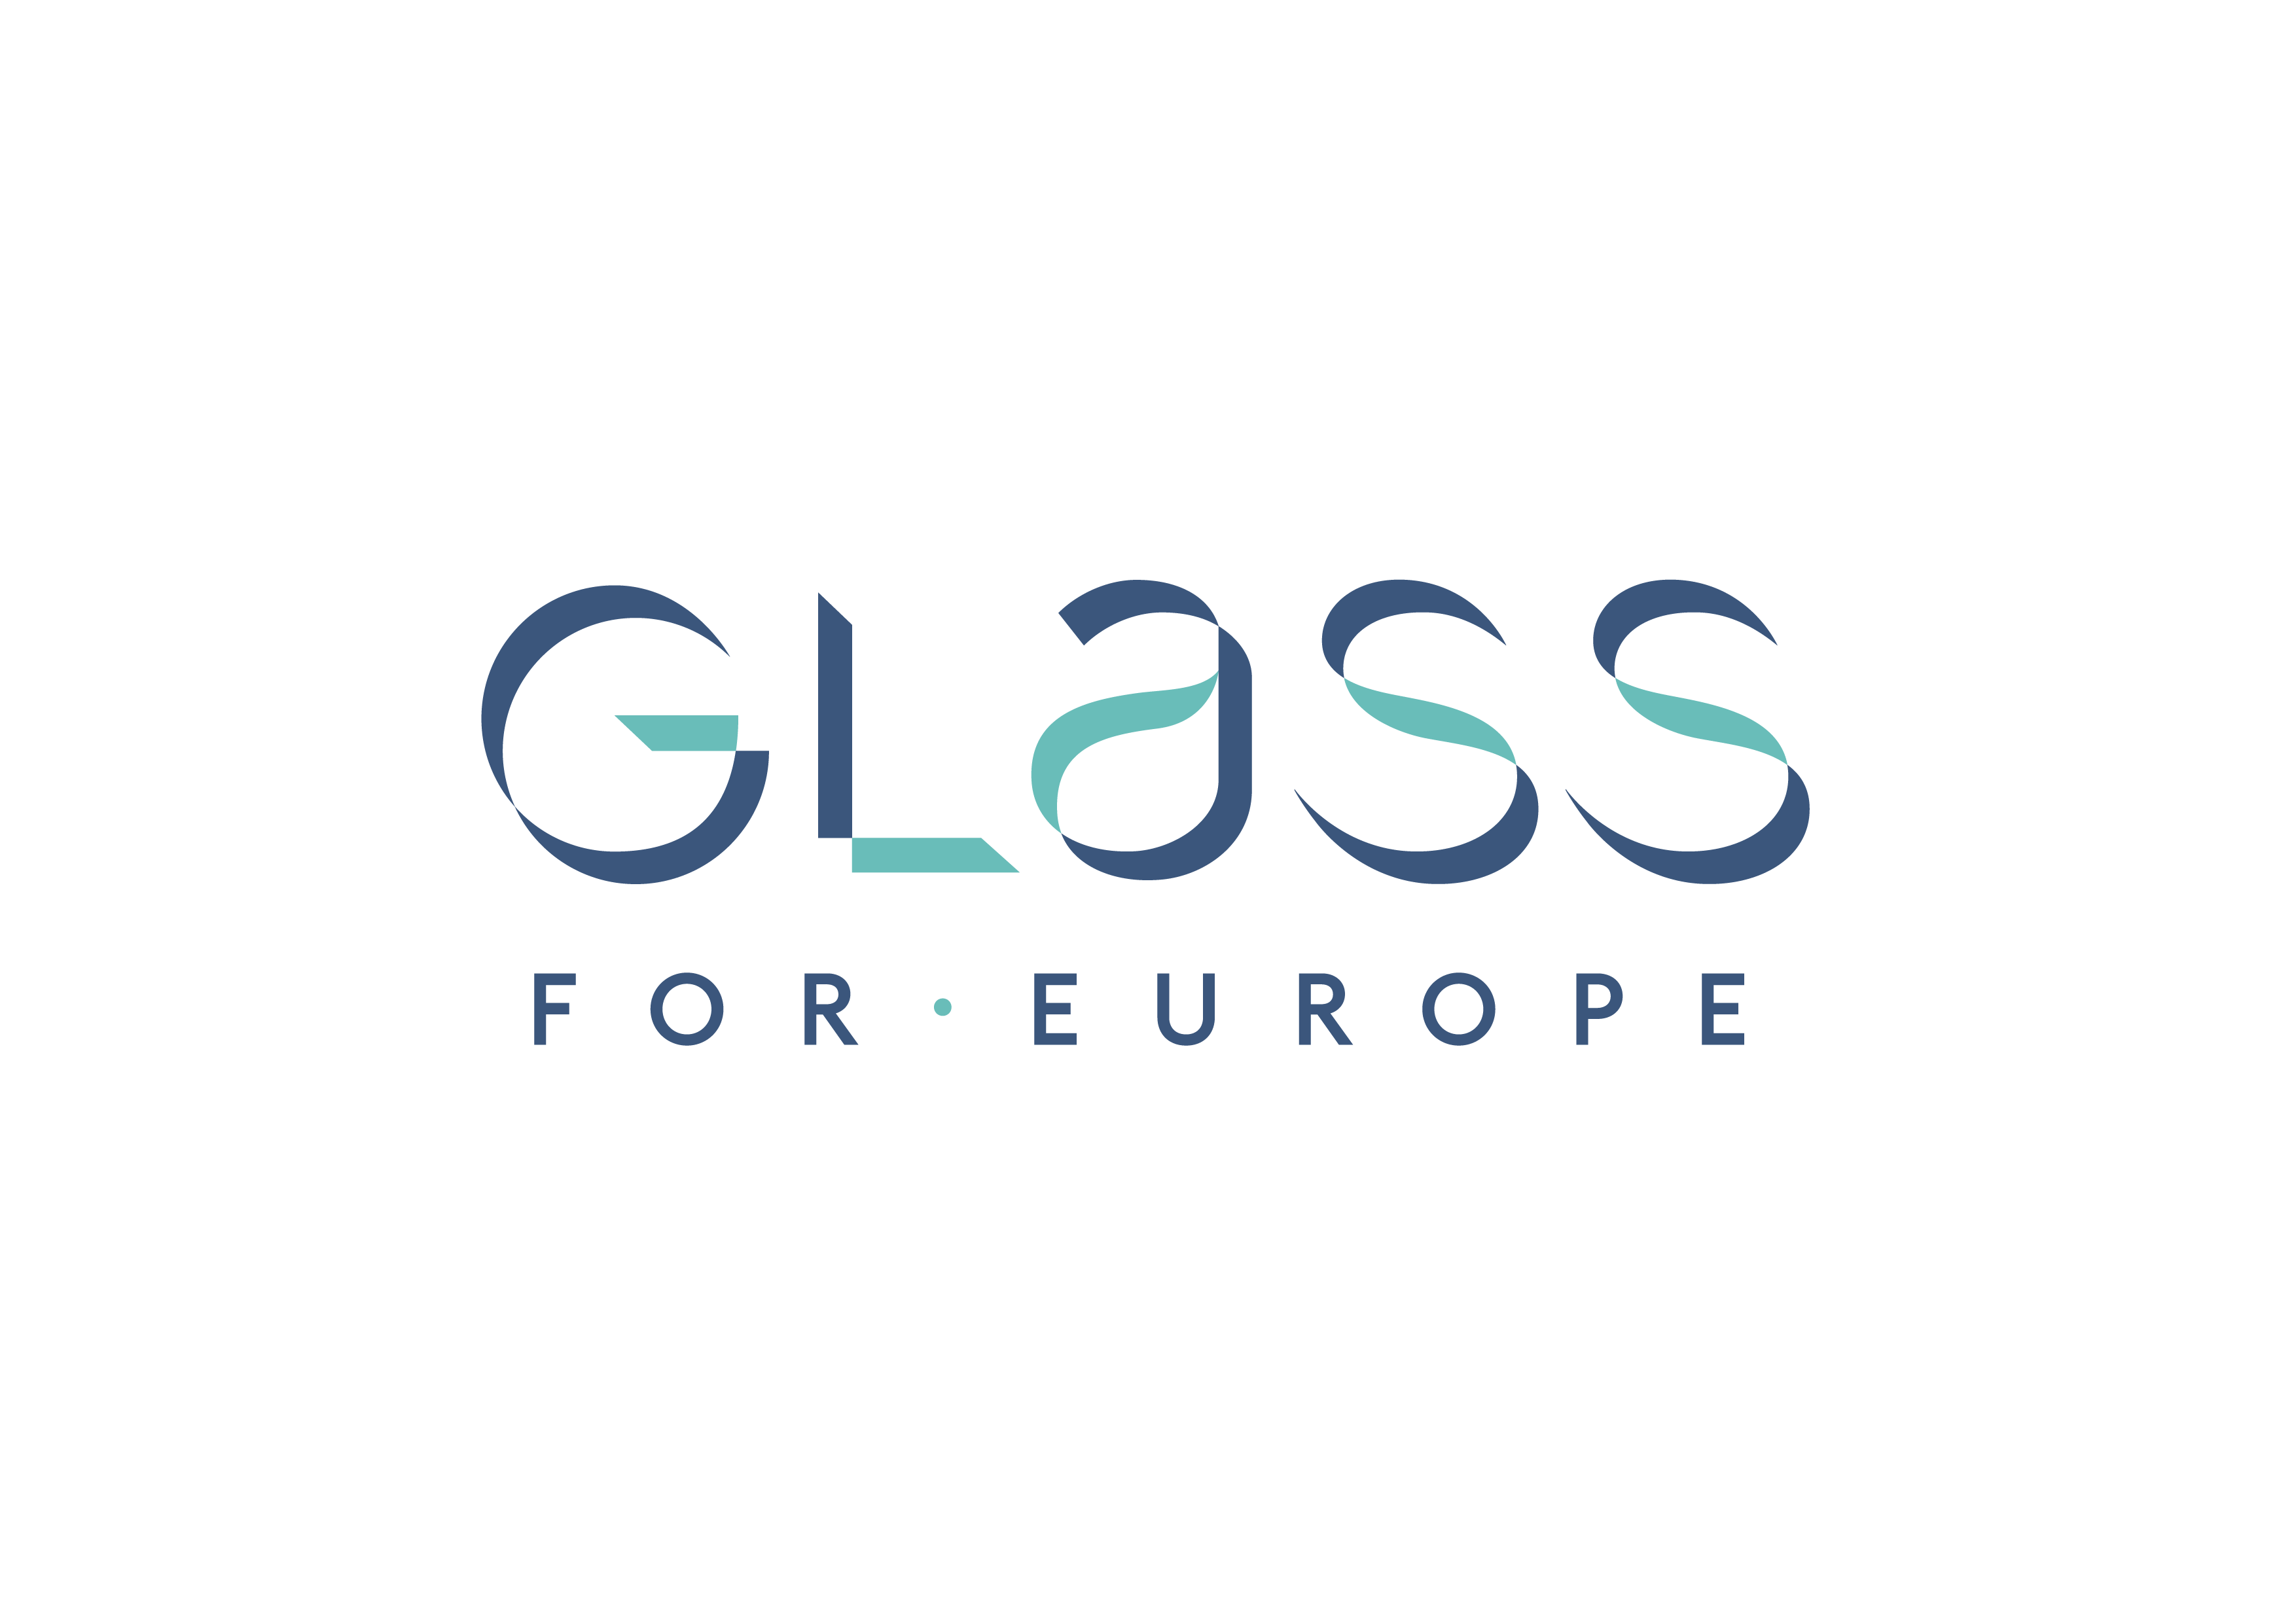 Glass for Europe